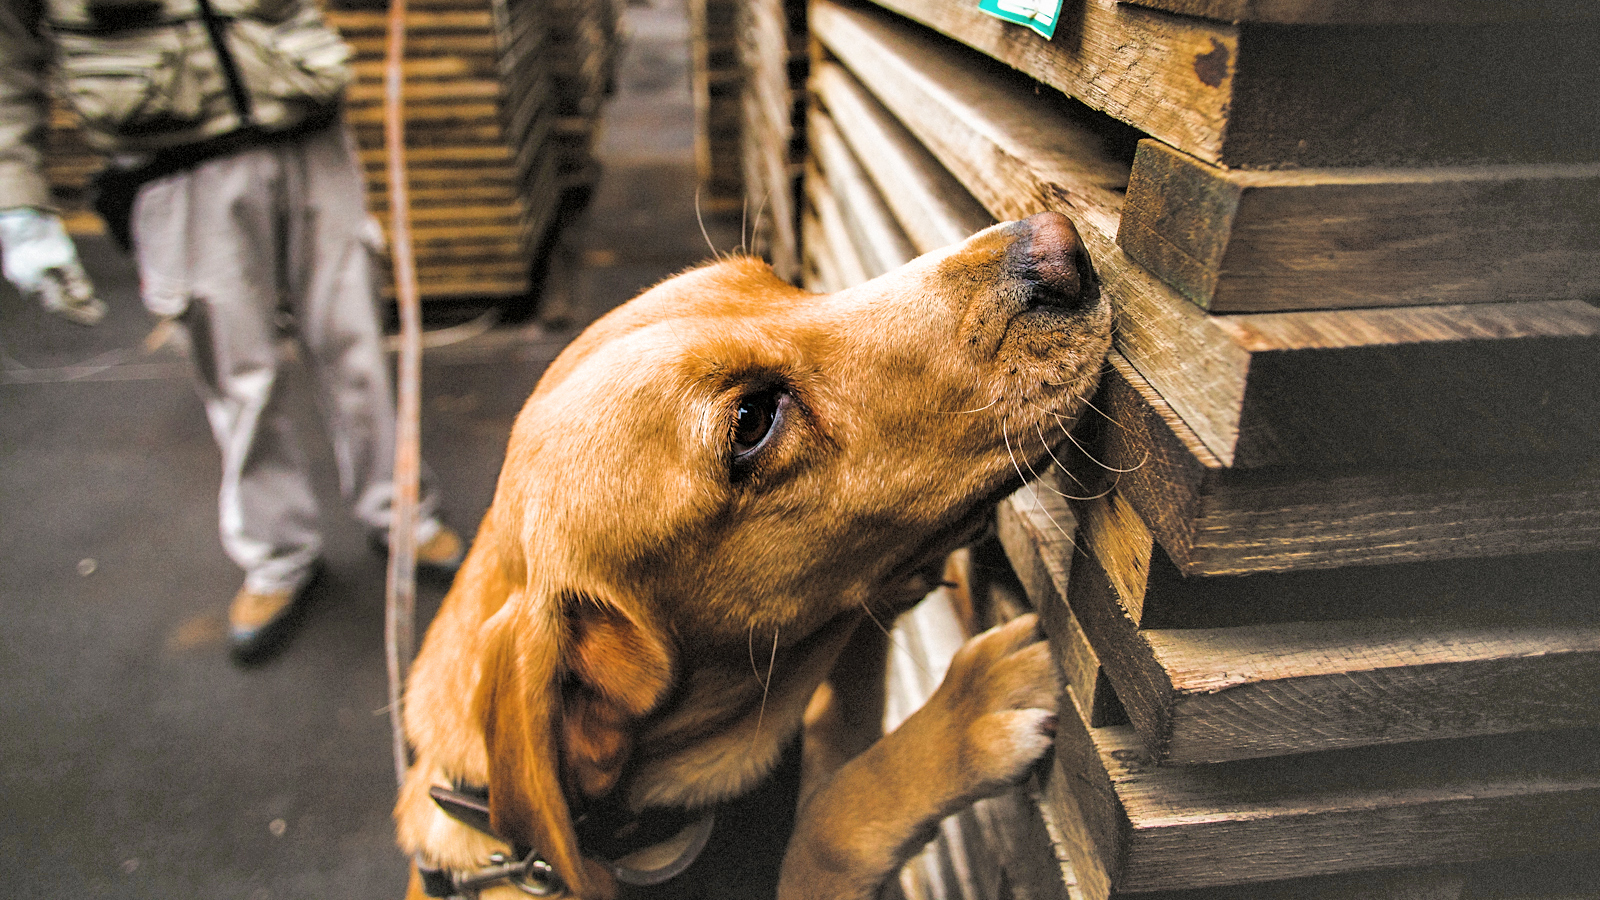 Very Good Dogs Sniff Out Tca Taint, Rescue Wine photo